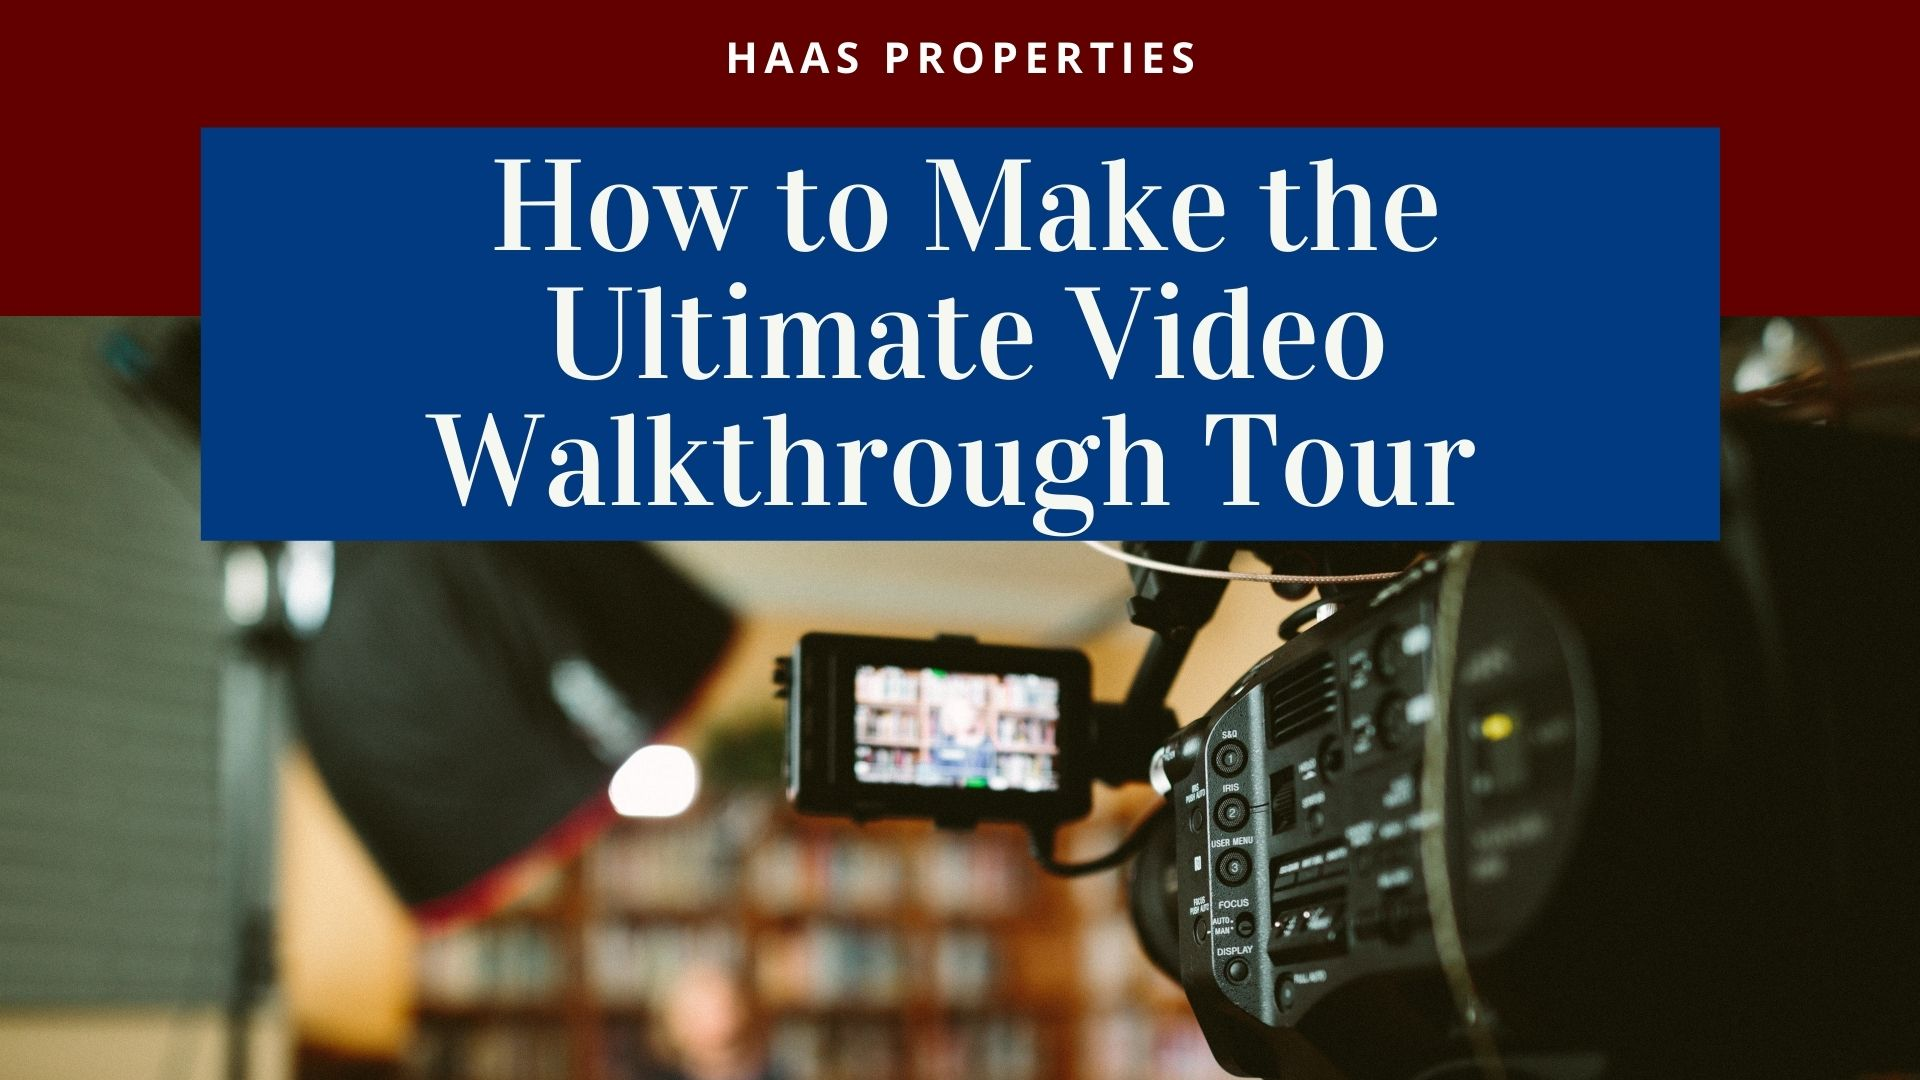 How to Make the Ultimate Video Walkthrough Tour